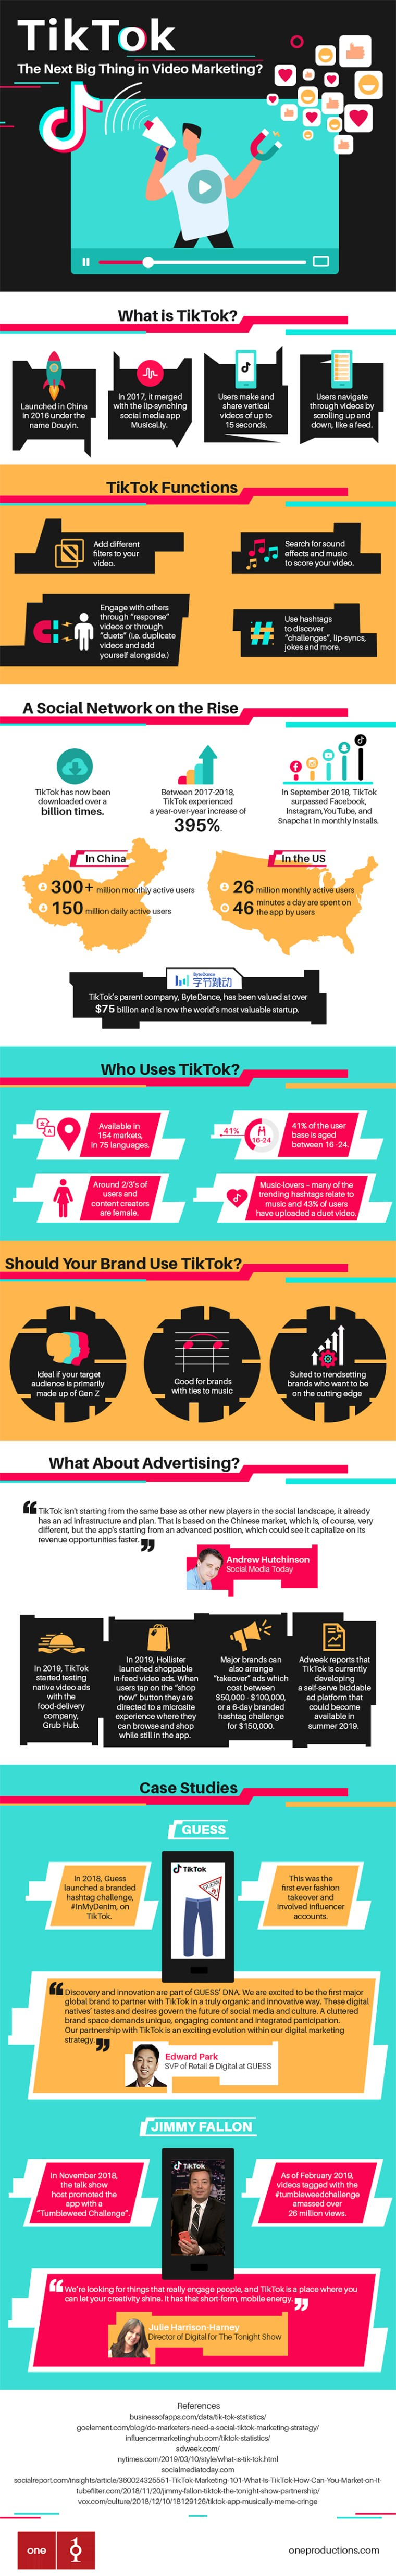 TikTok marketing infographic